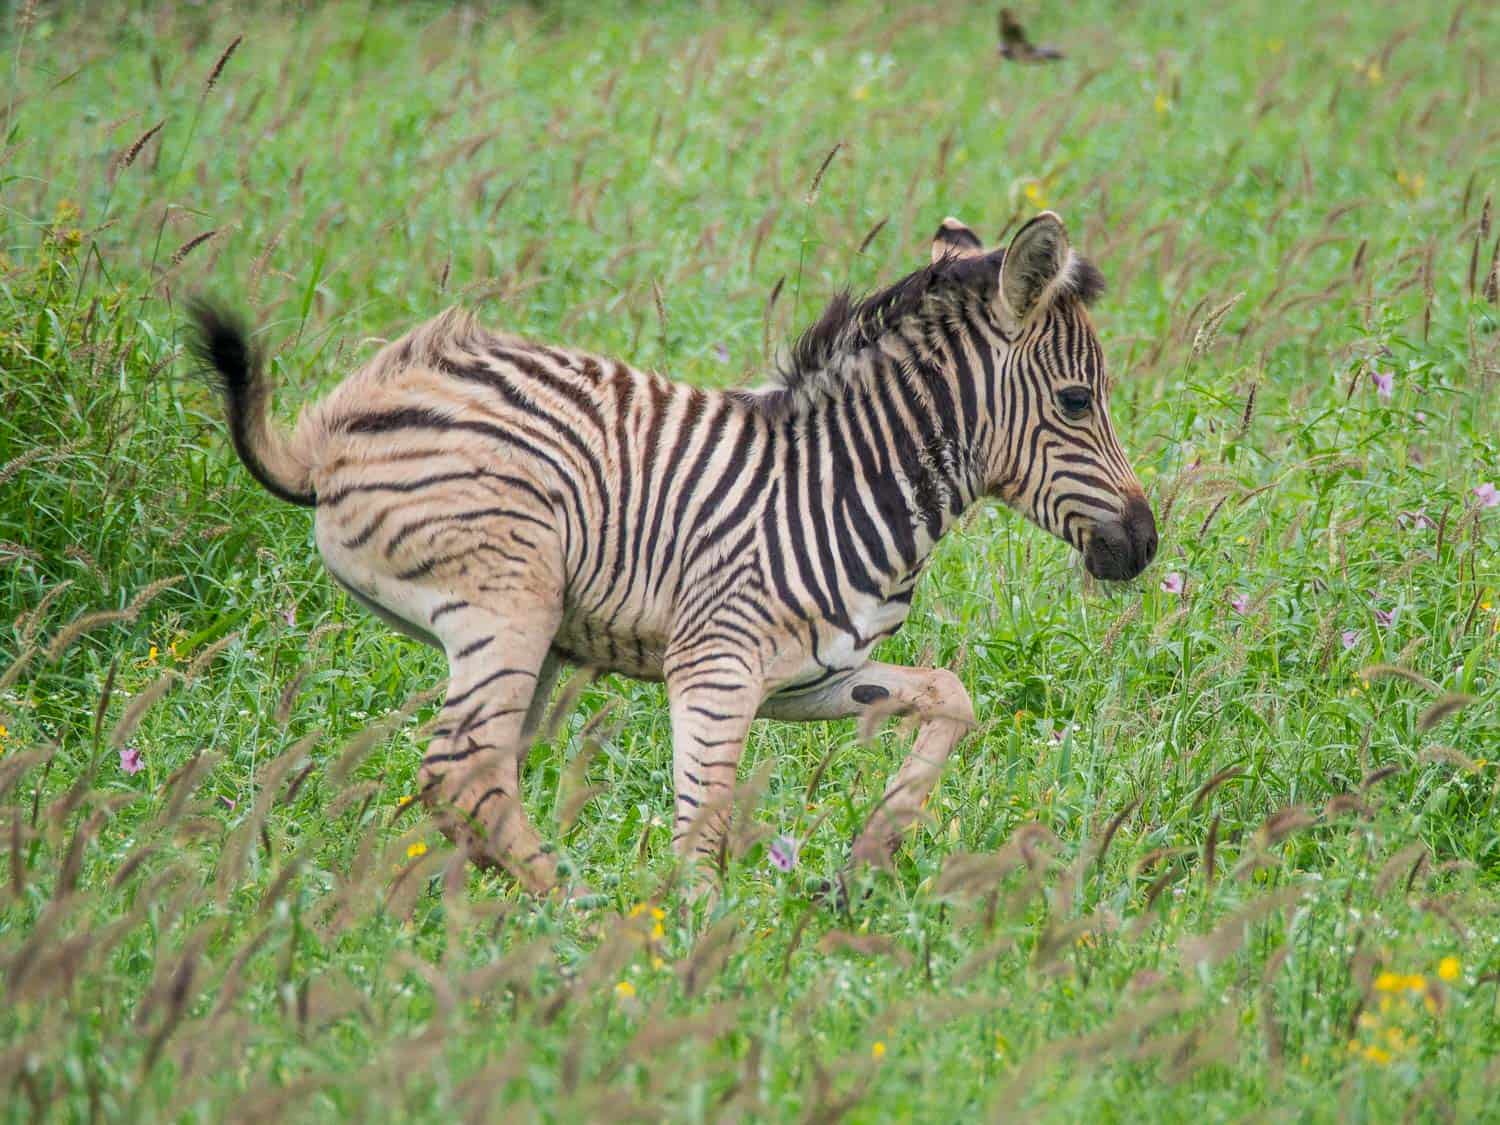 Baby zebra during the rainy season in Kruger National Park